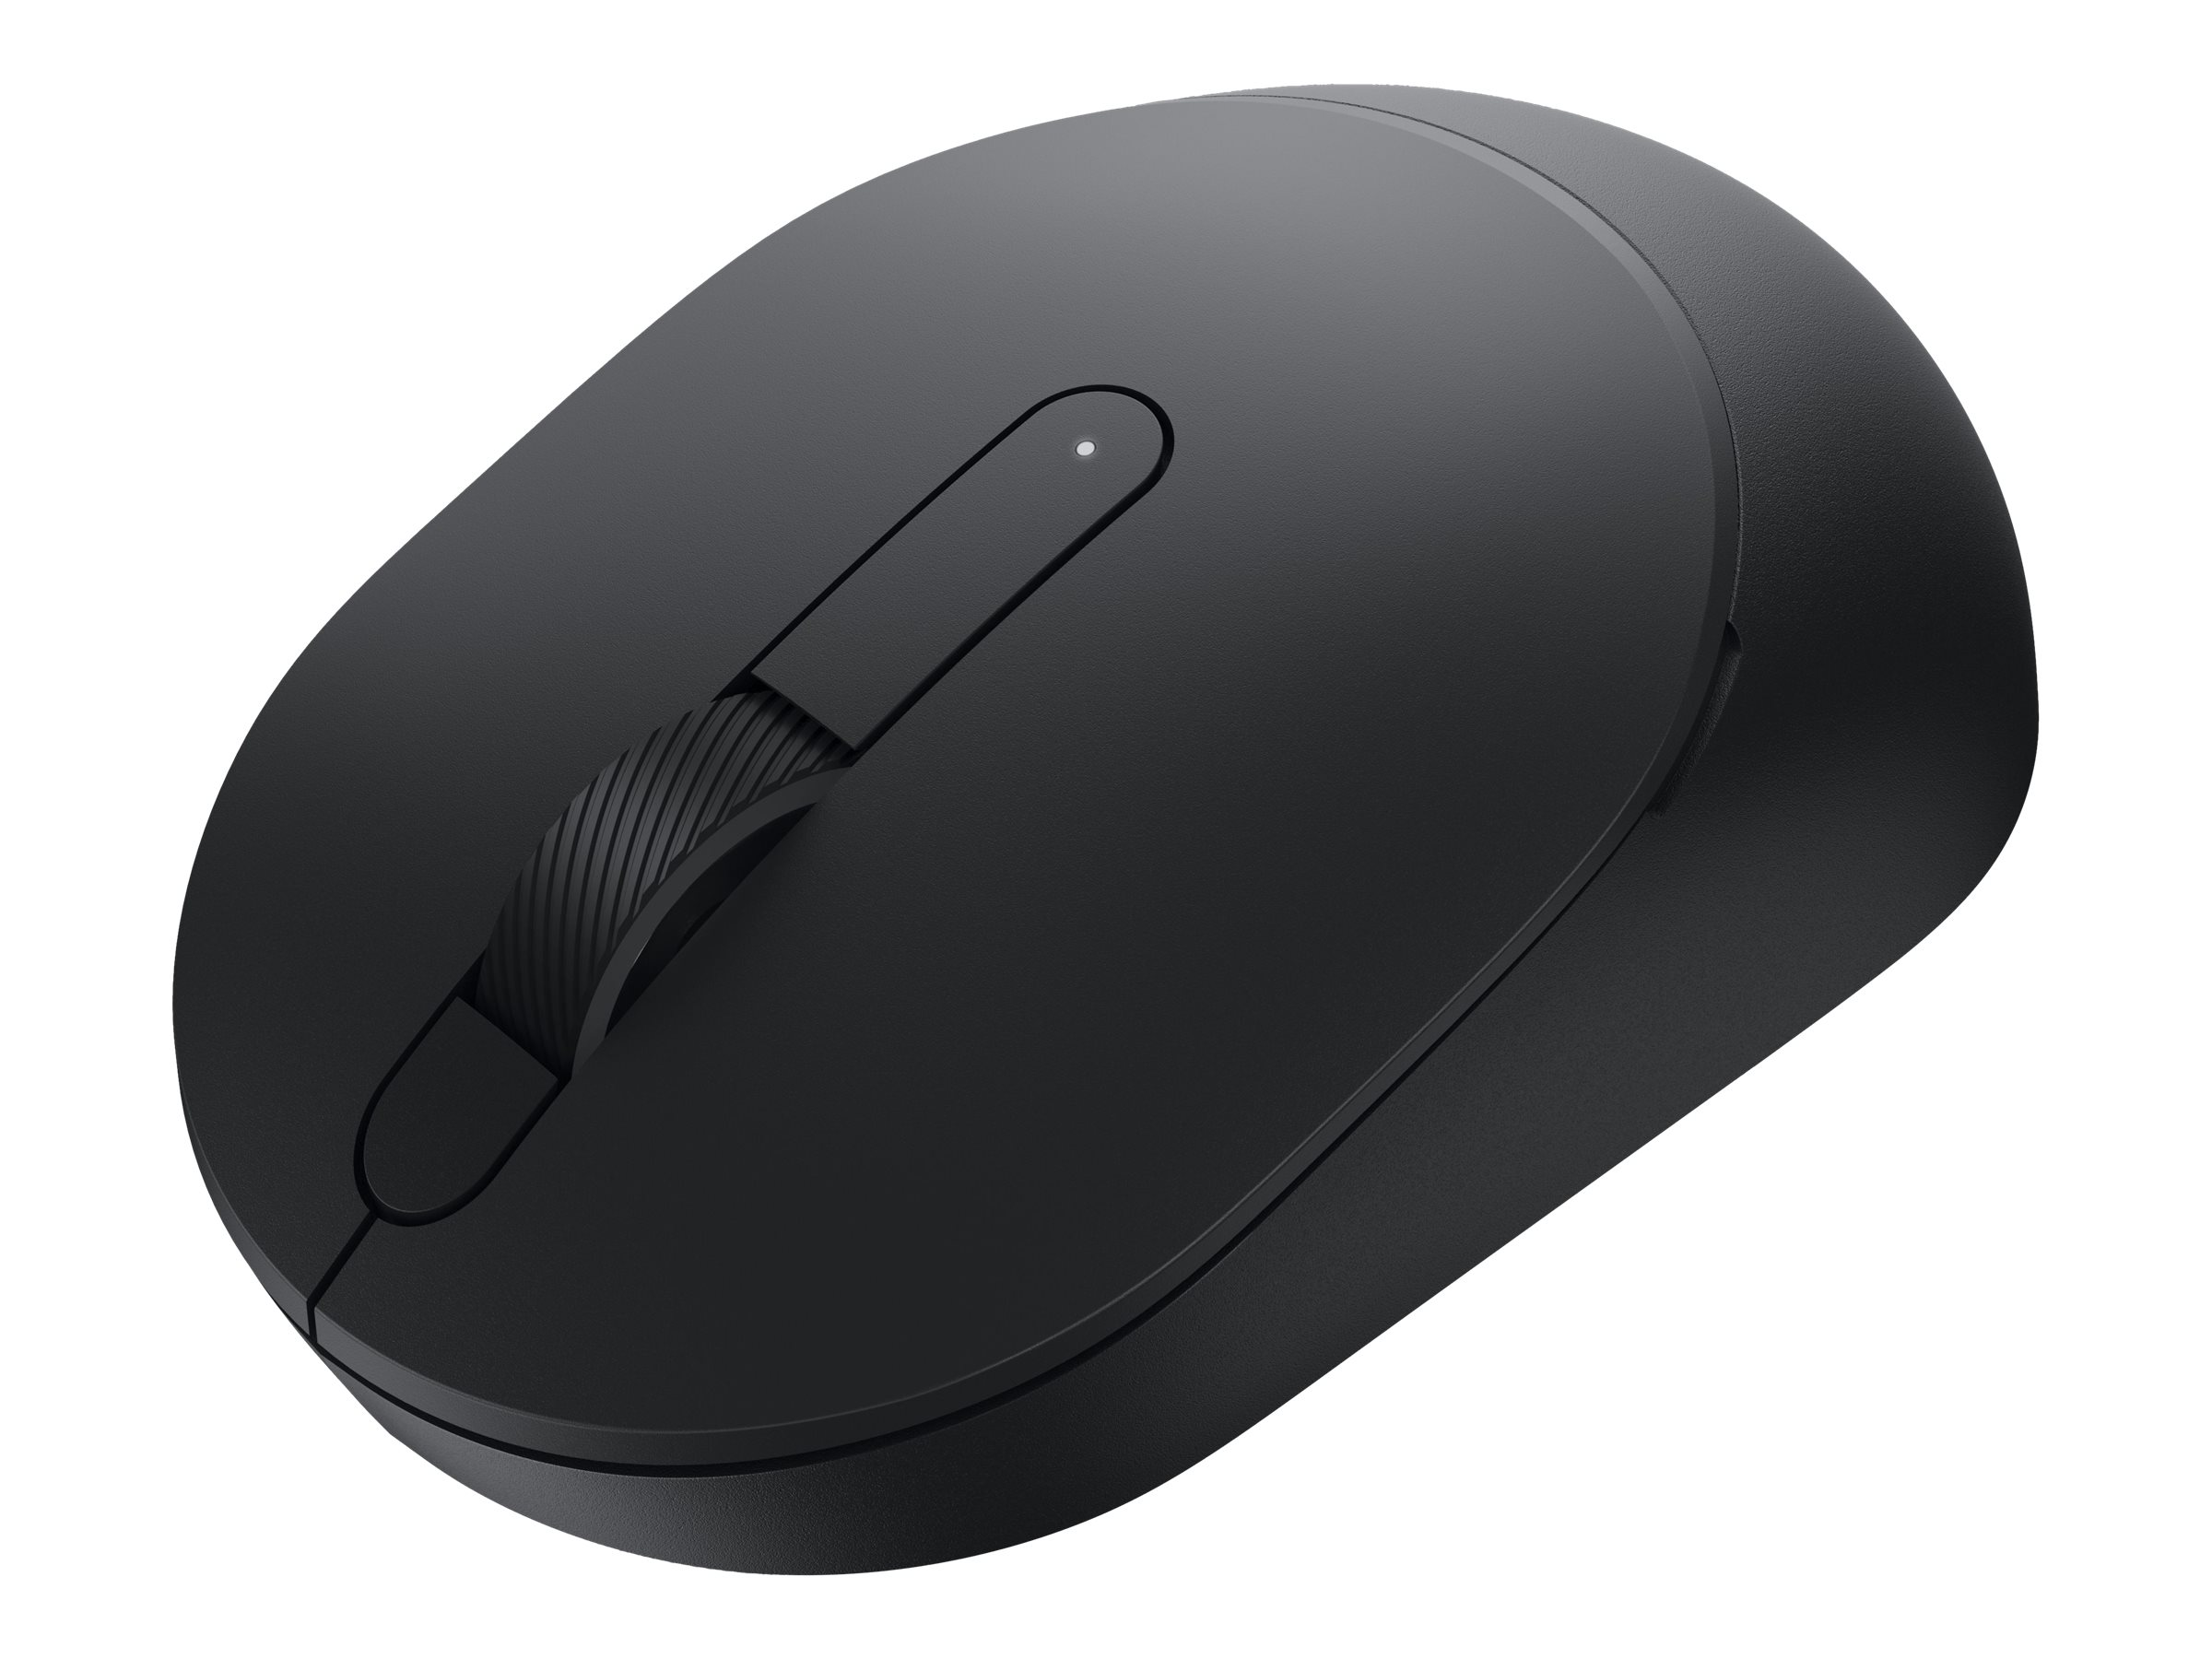 Dell MS3320W - mouse - 2.4 GHz, Bluetooth 5.0 - black